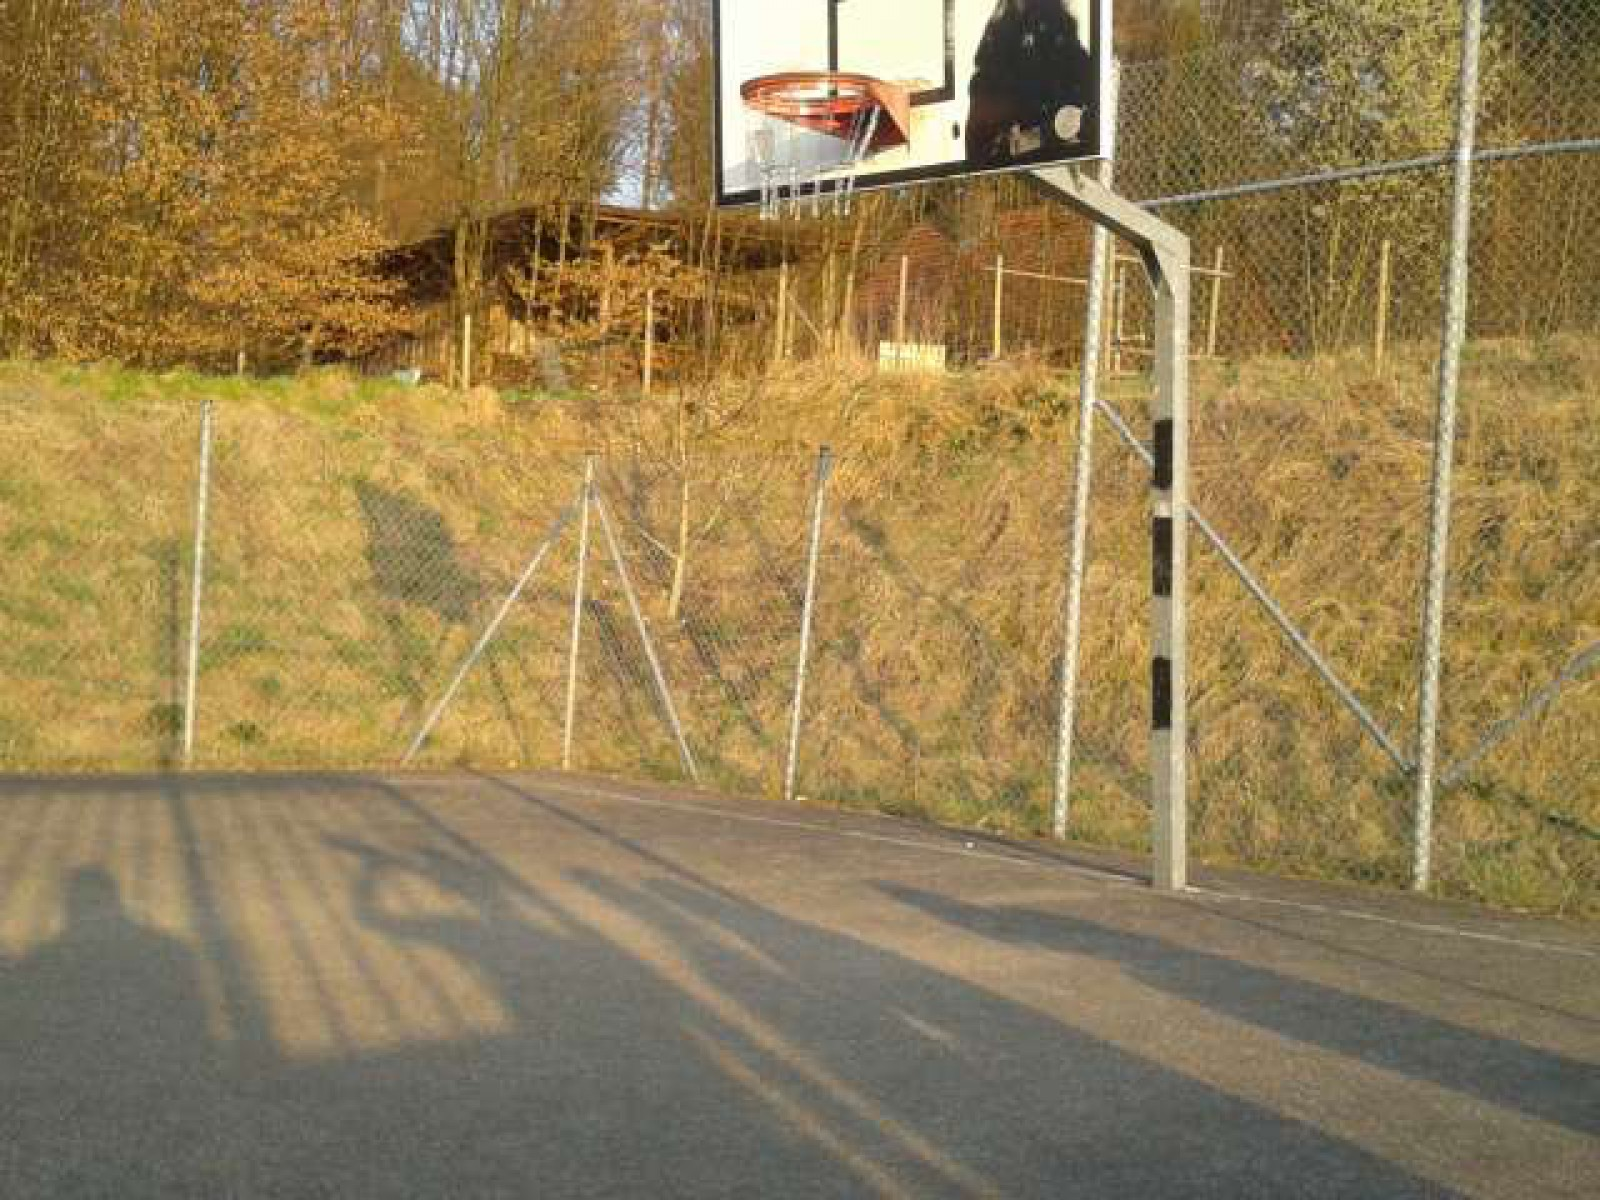 Basketball Court am Amselberg, Gengenbach, Germany